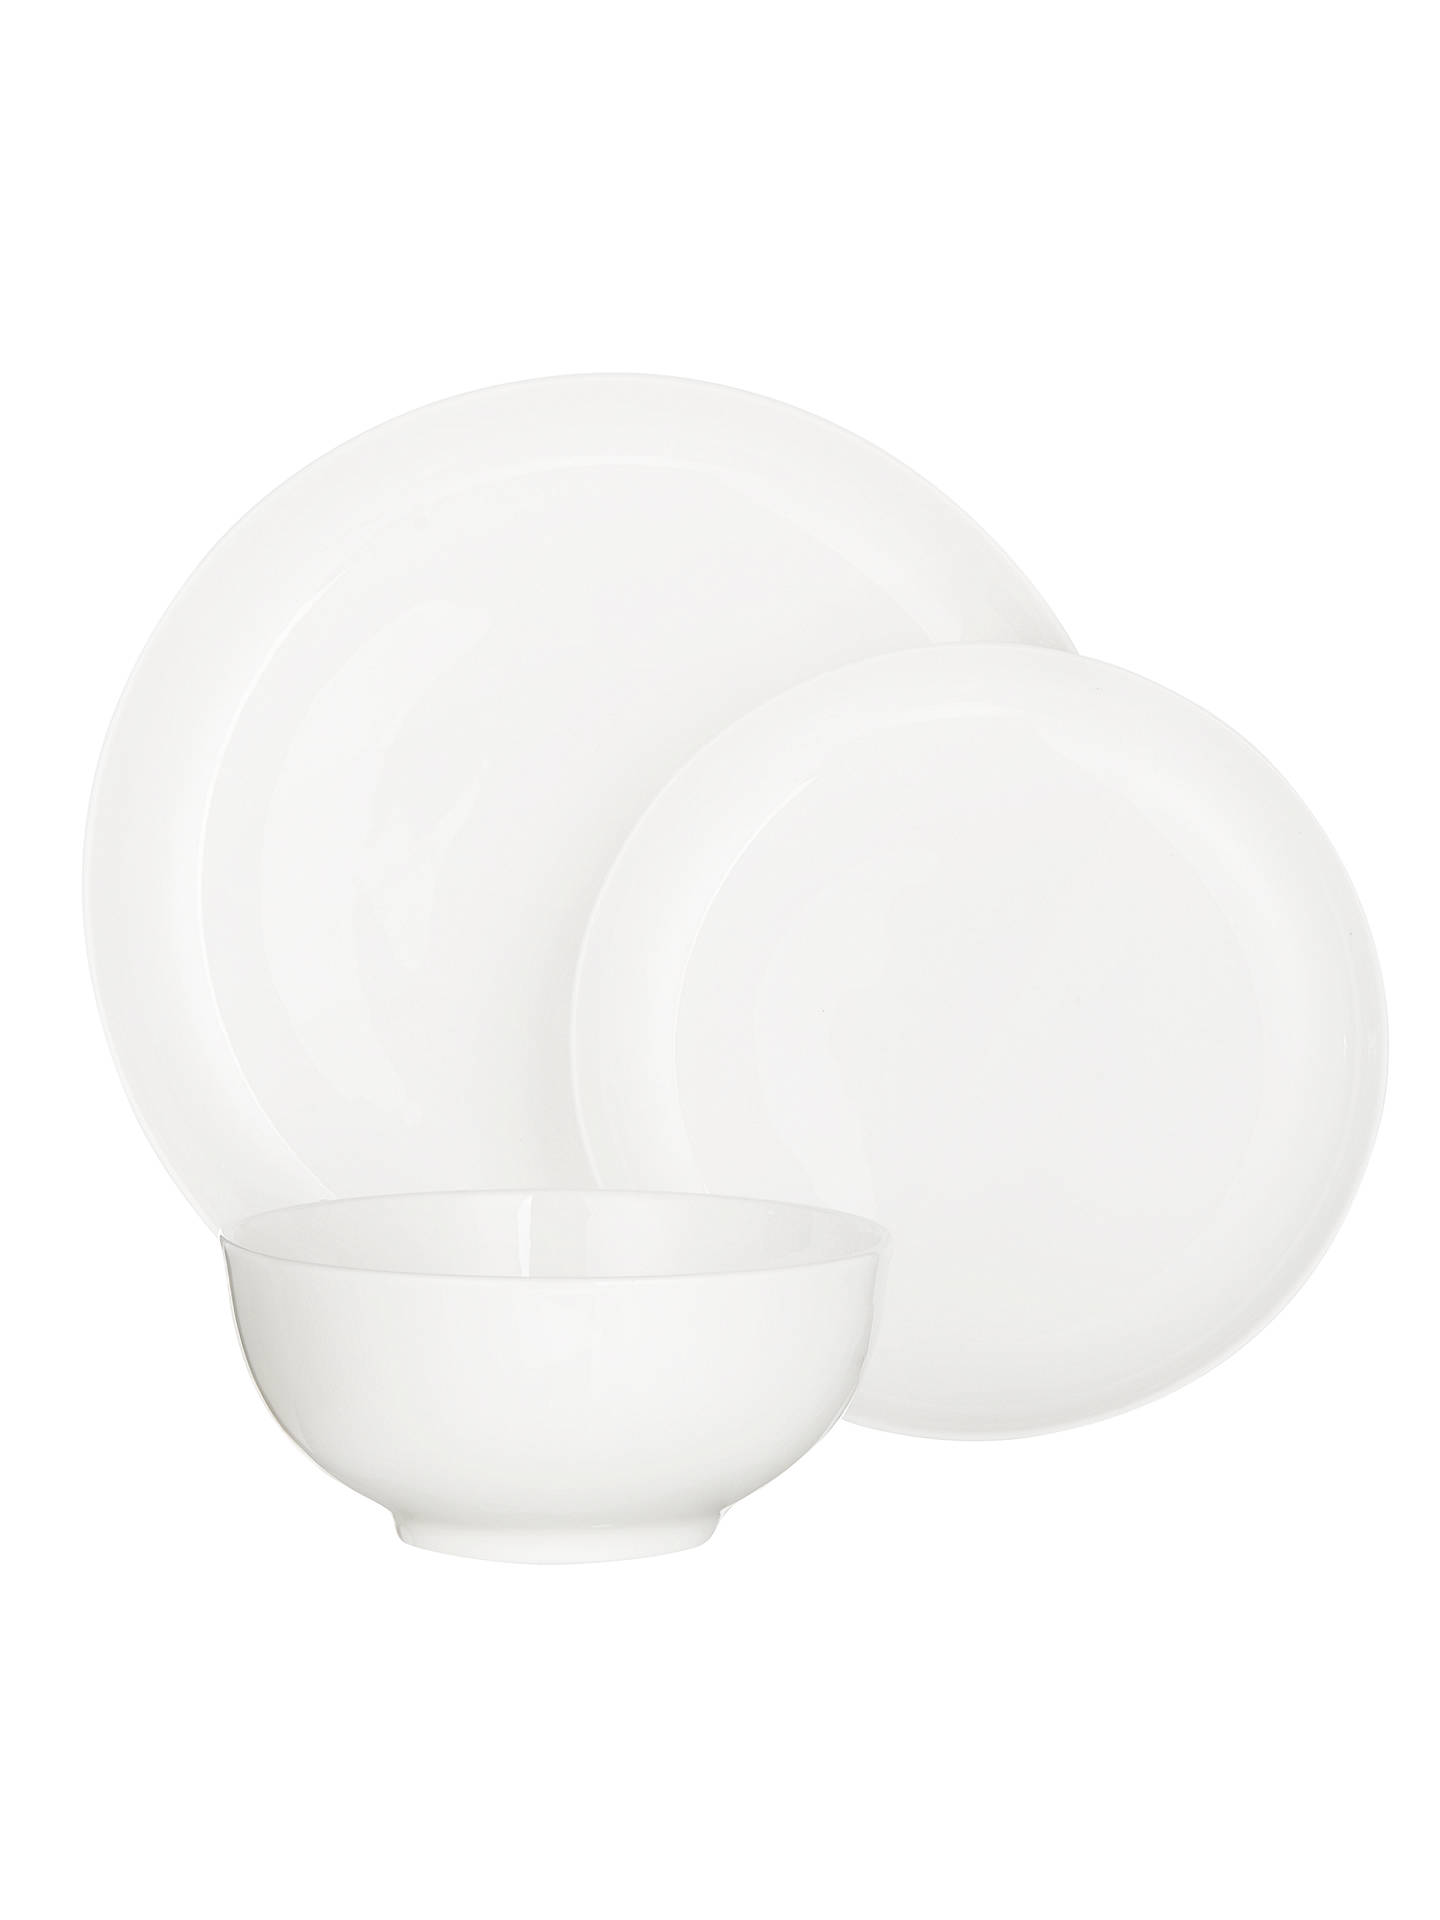 BuyJohn Lewis & Partners Contour Bone China Dinnerware Set, White, 3 Piece Online at johnlewis.com